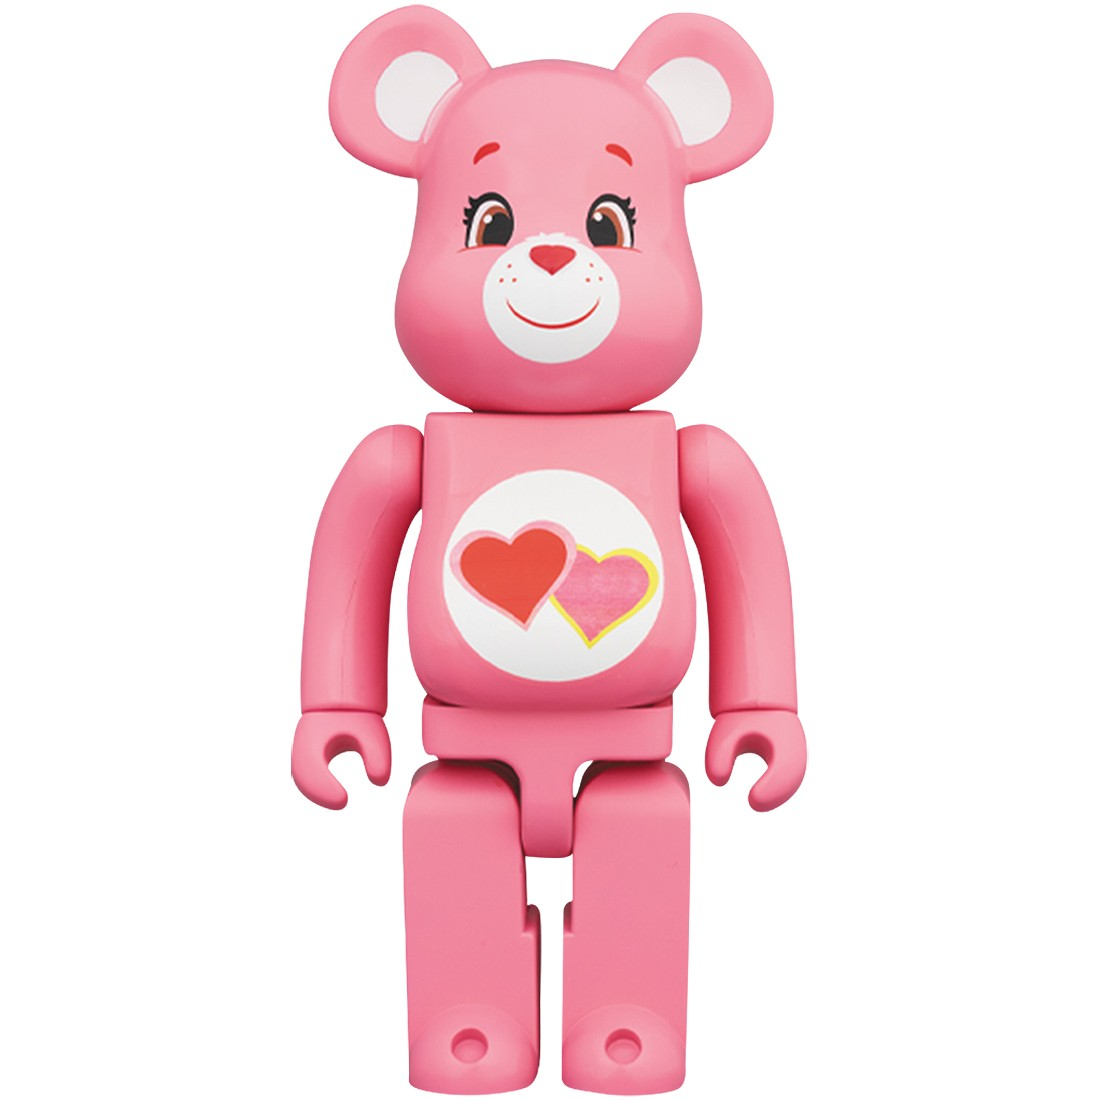 PREORDER - Medicom Care Bears Love A Lot Bear 400% Bearbrick Figure (pink)